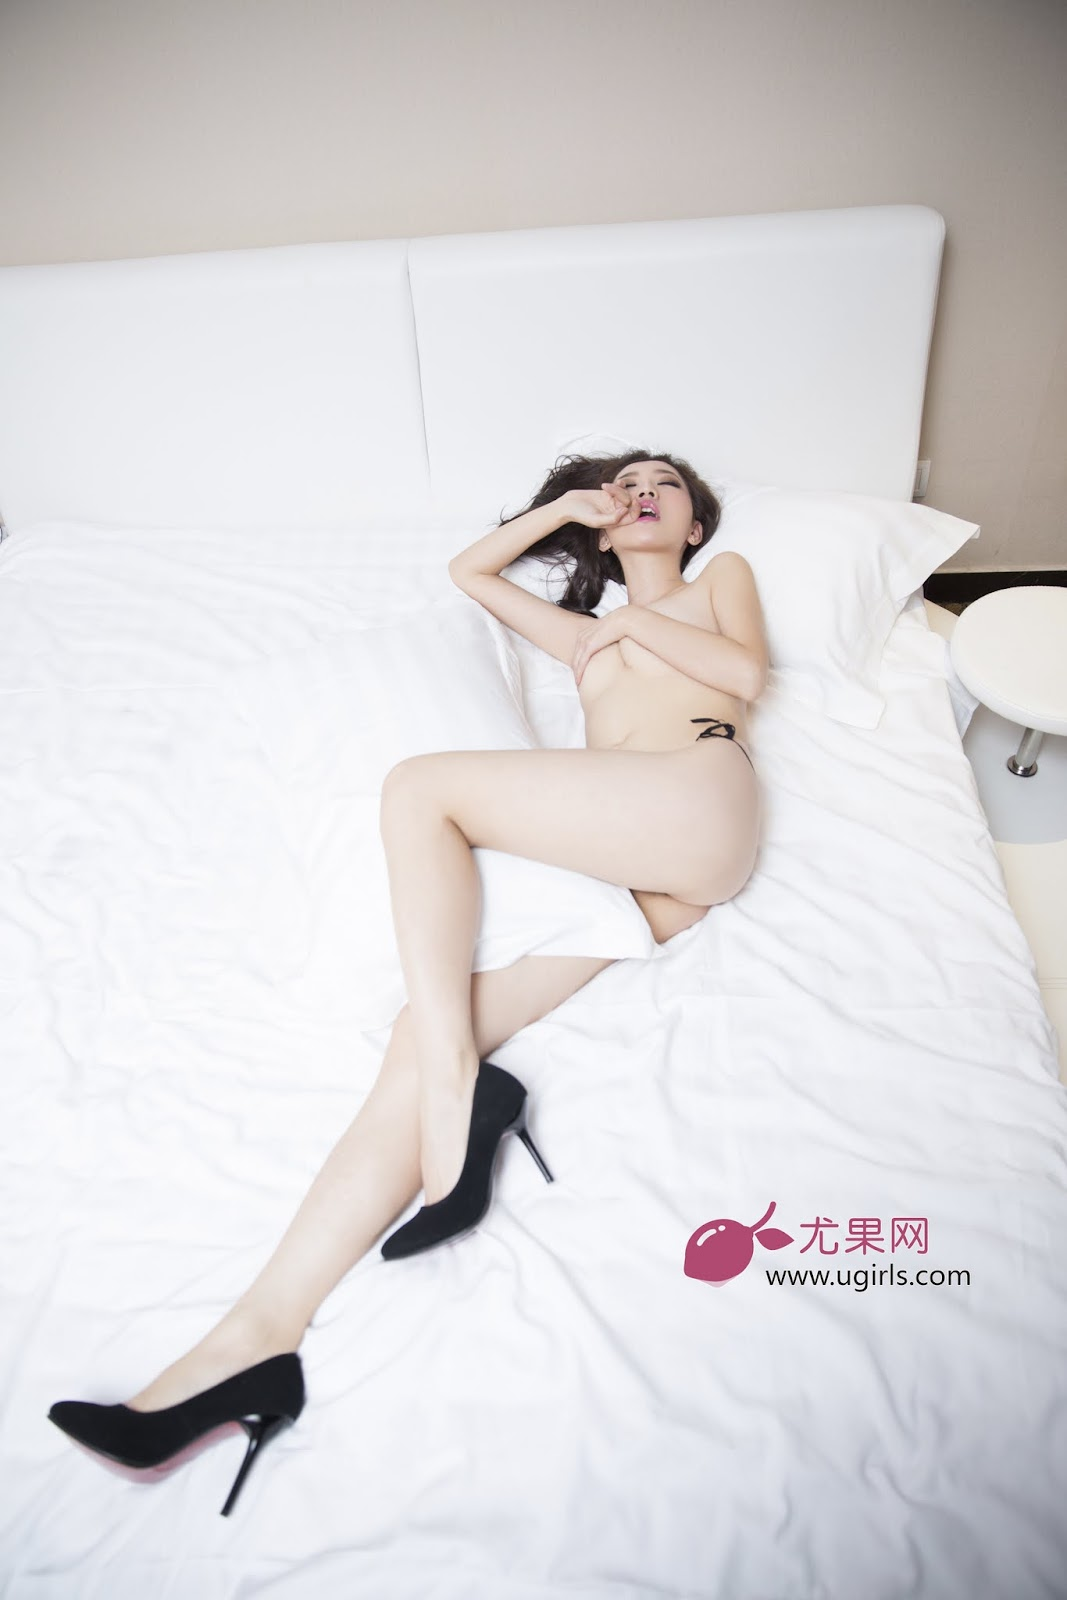 A14A5556 - Hot Model UGIRLS NO.8